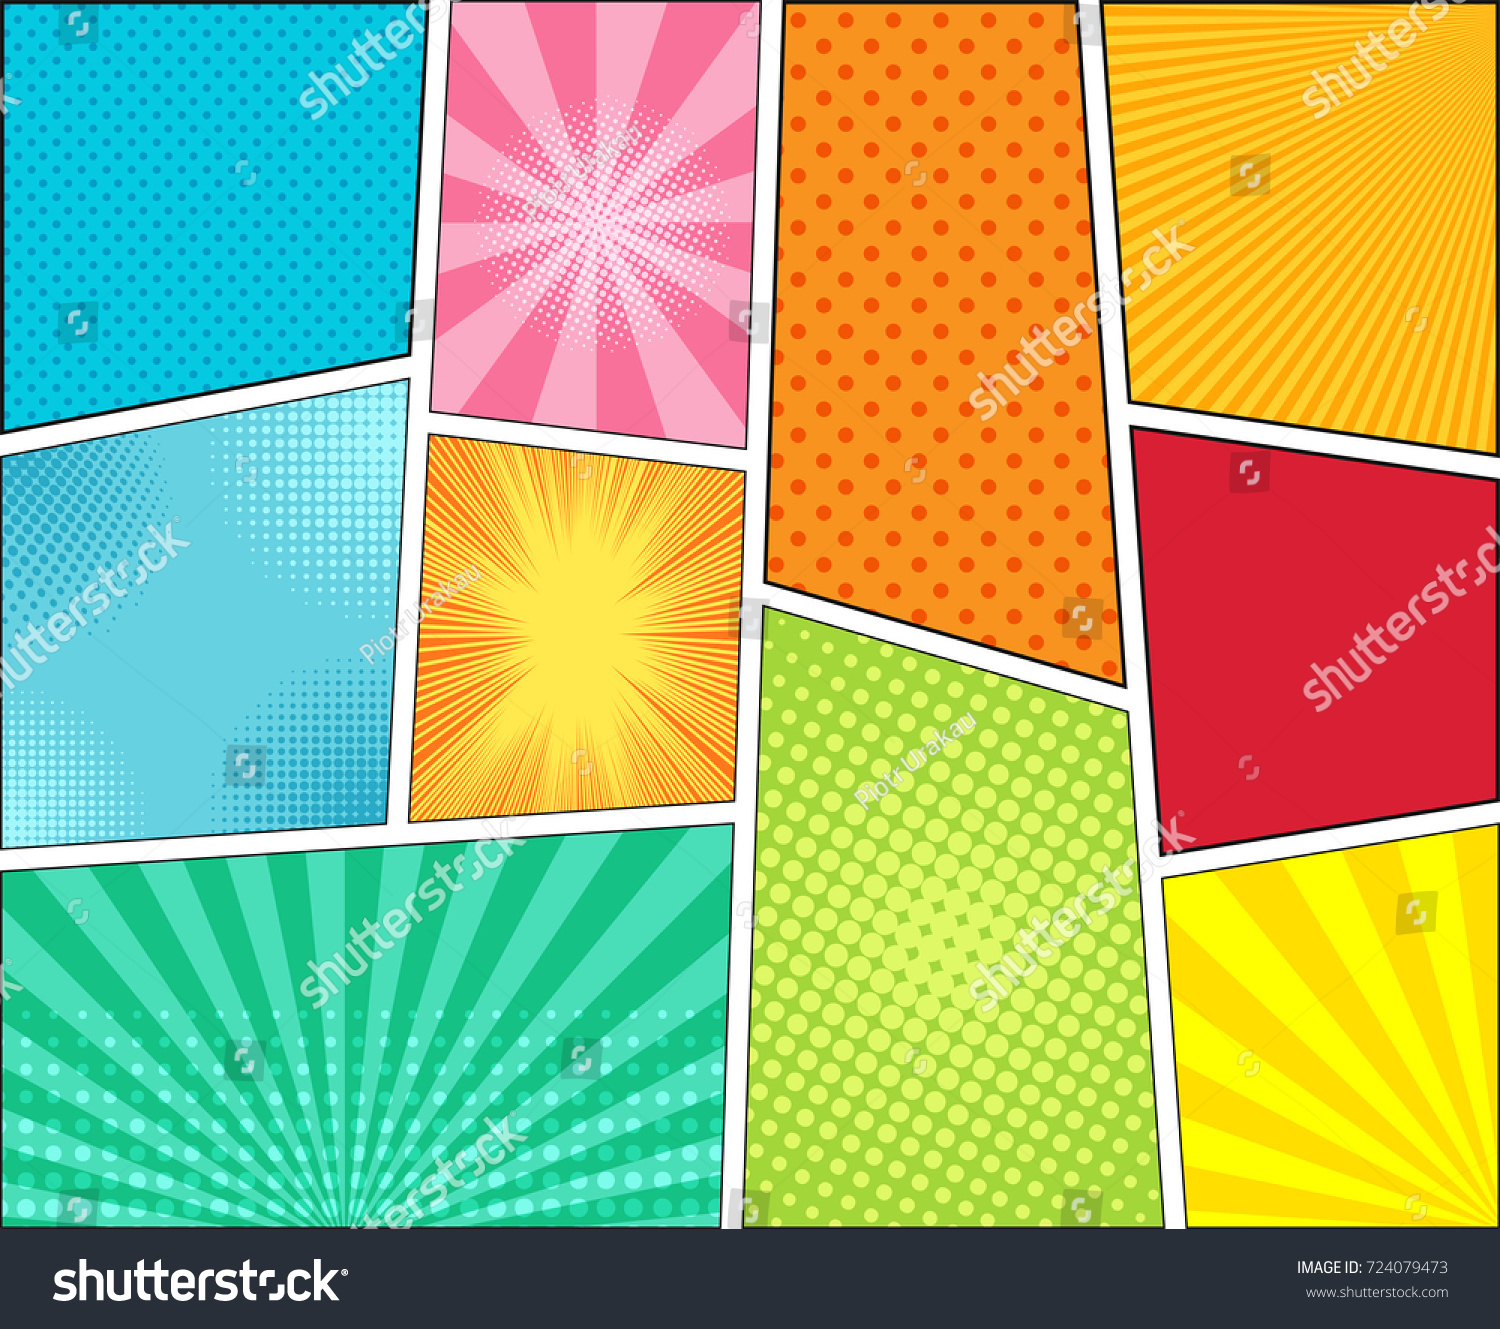 ic Book Colorful Background Halftone Rays Stock Vector